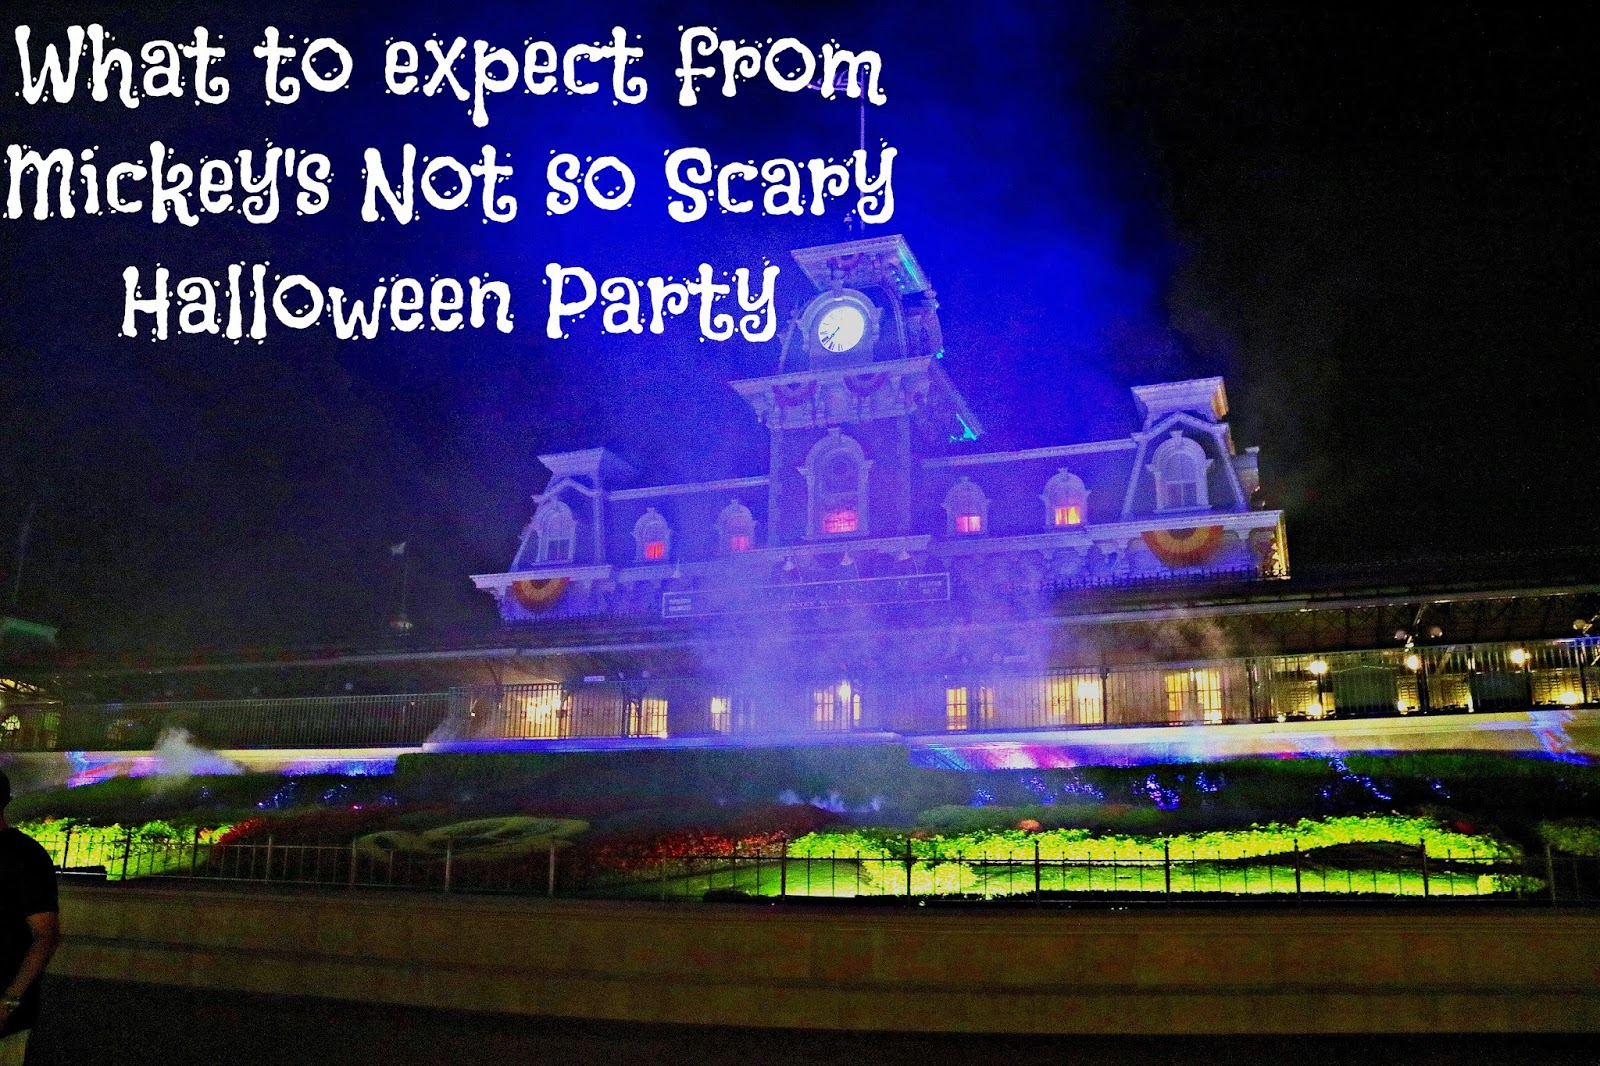 what to expect from mickey's not so scary halloween party | shy